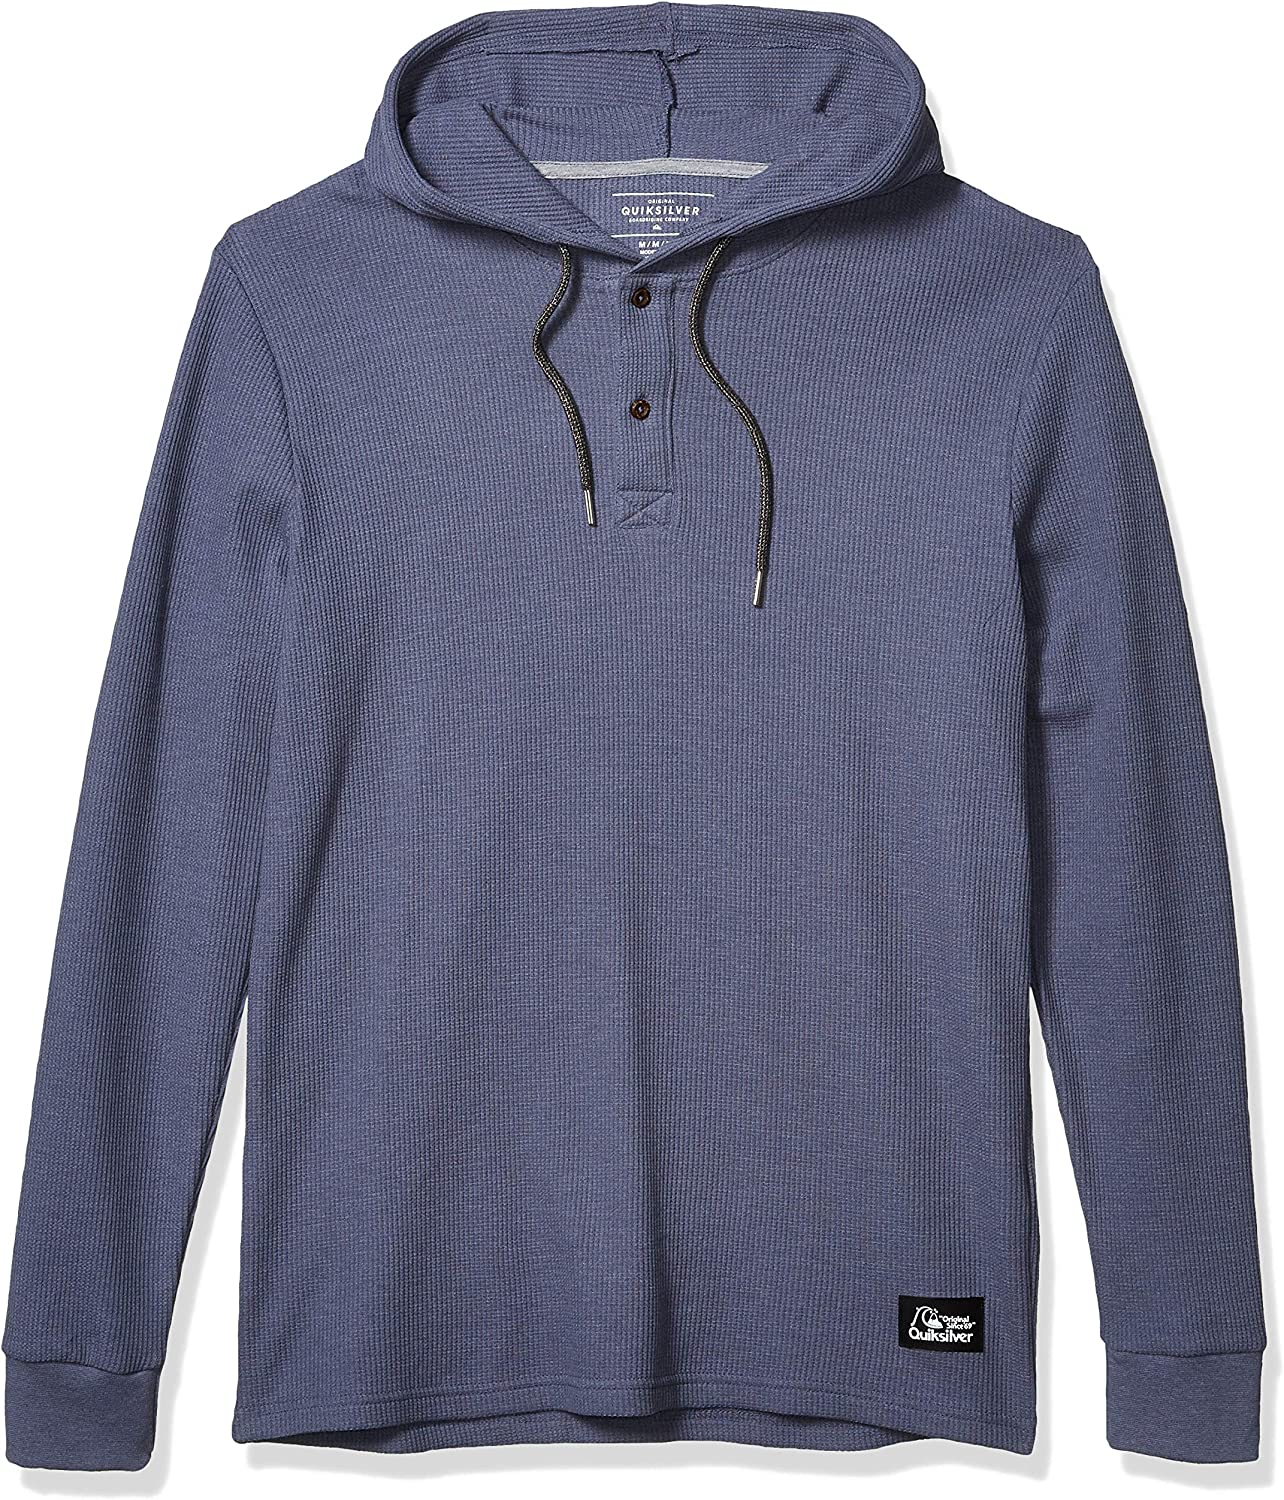 Quiksilver Mens Rio Real Hoody Knit